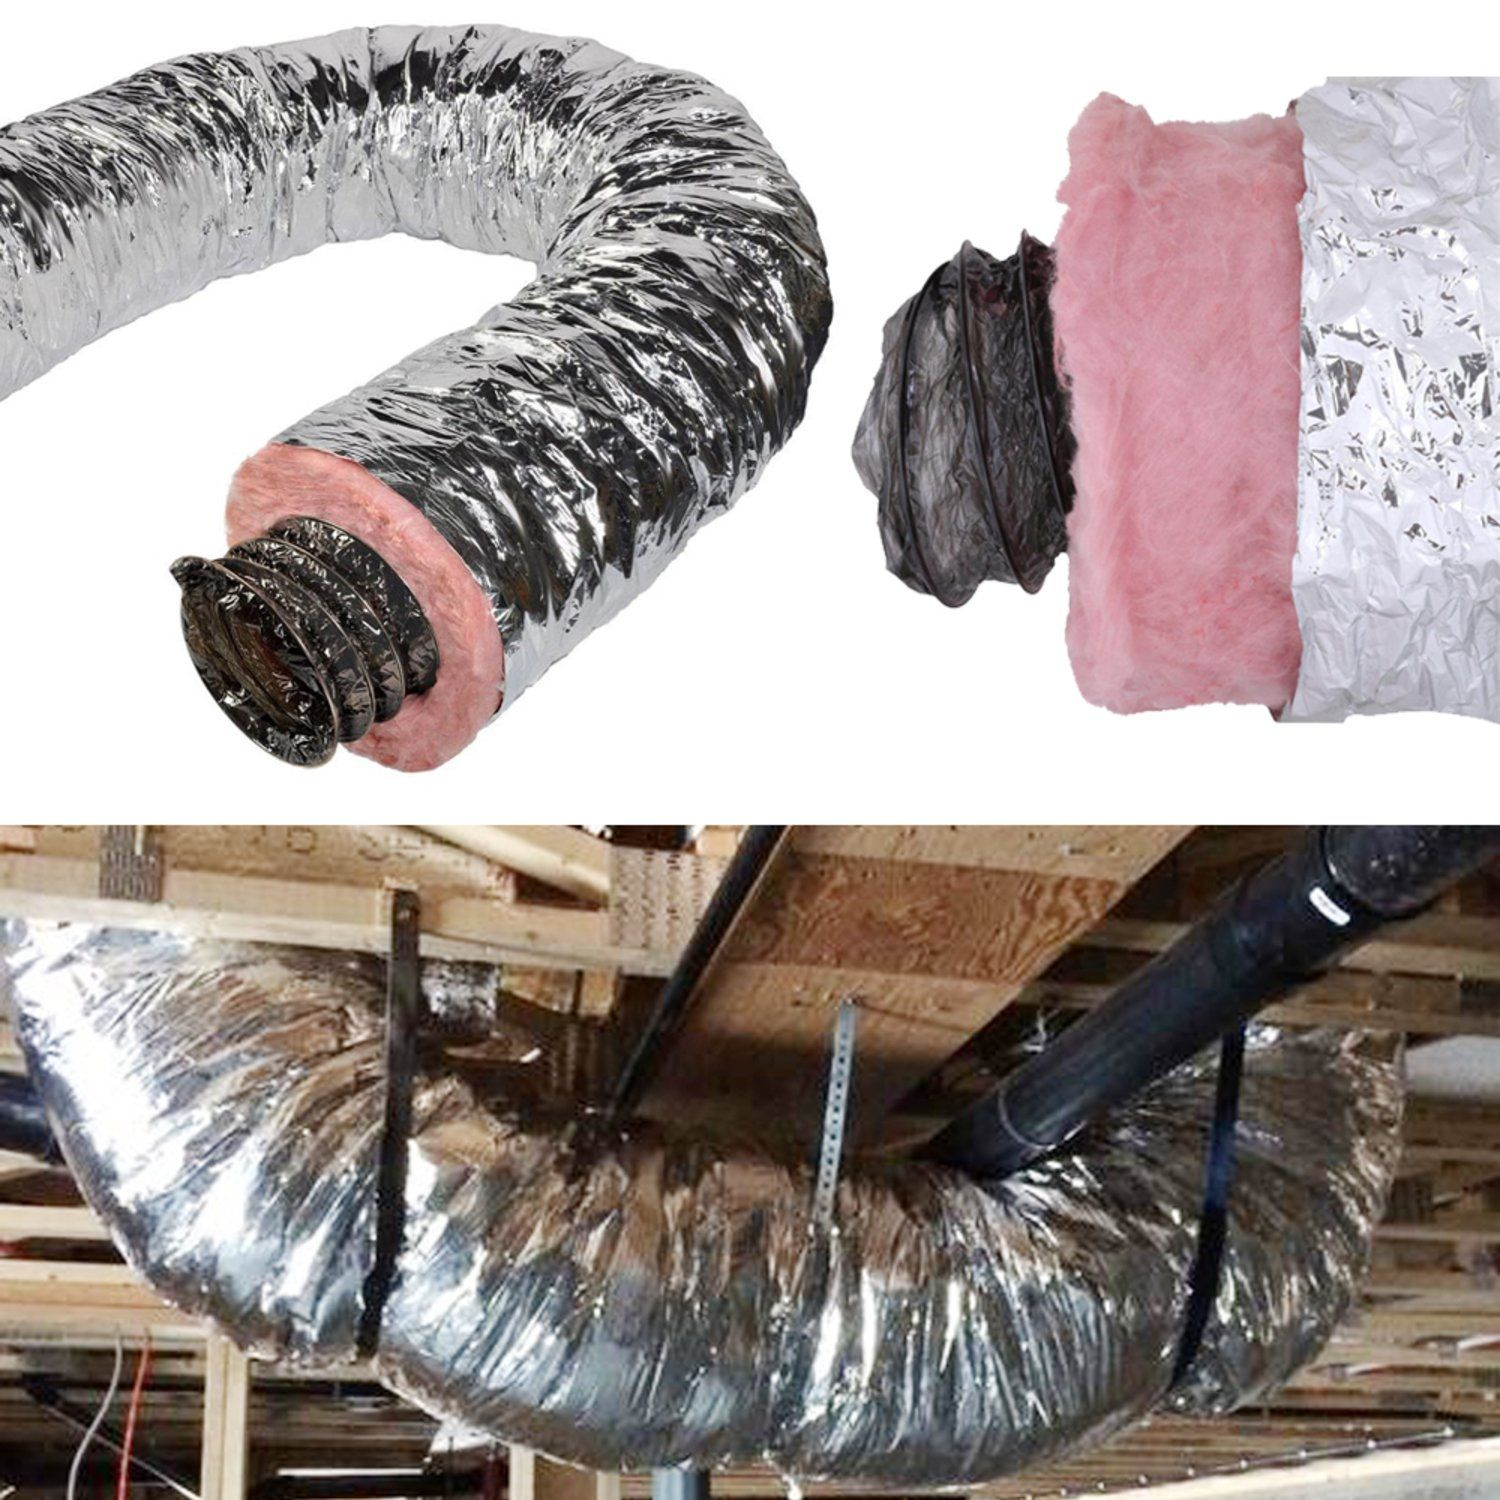 Details about 4 6 10 12 14 16 18 Inch Insulated Flex Duct